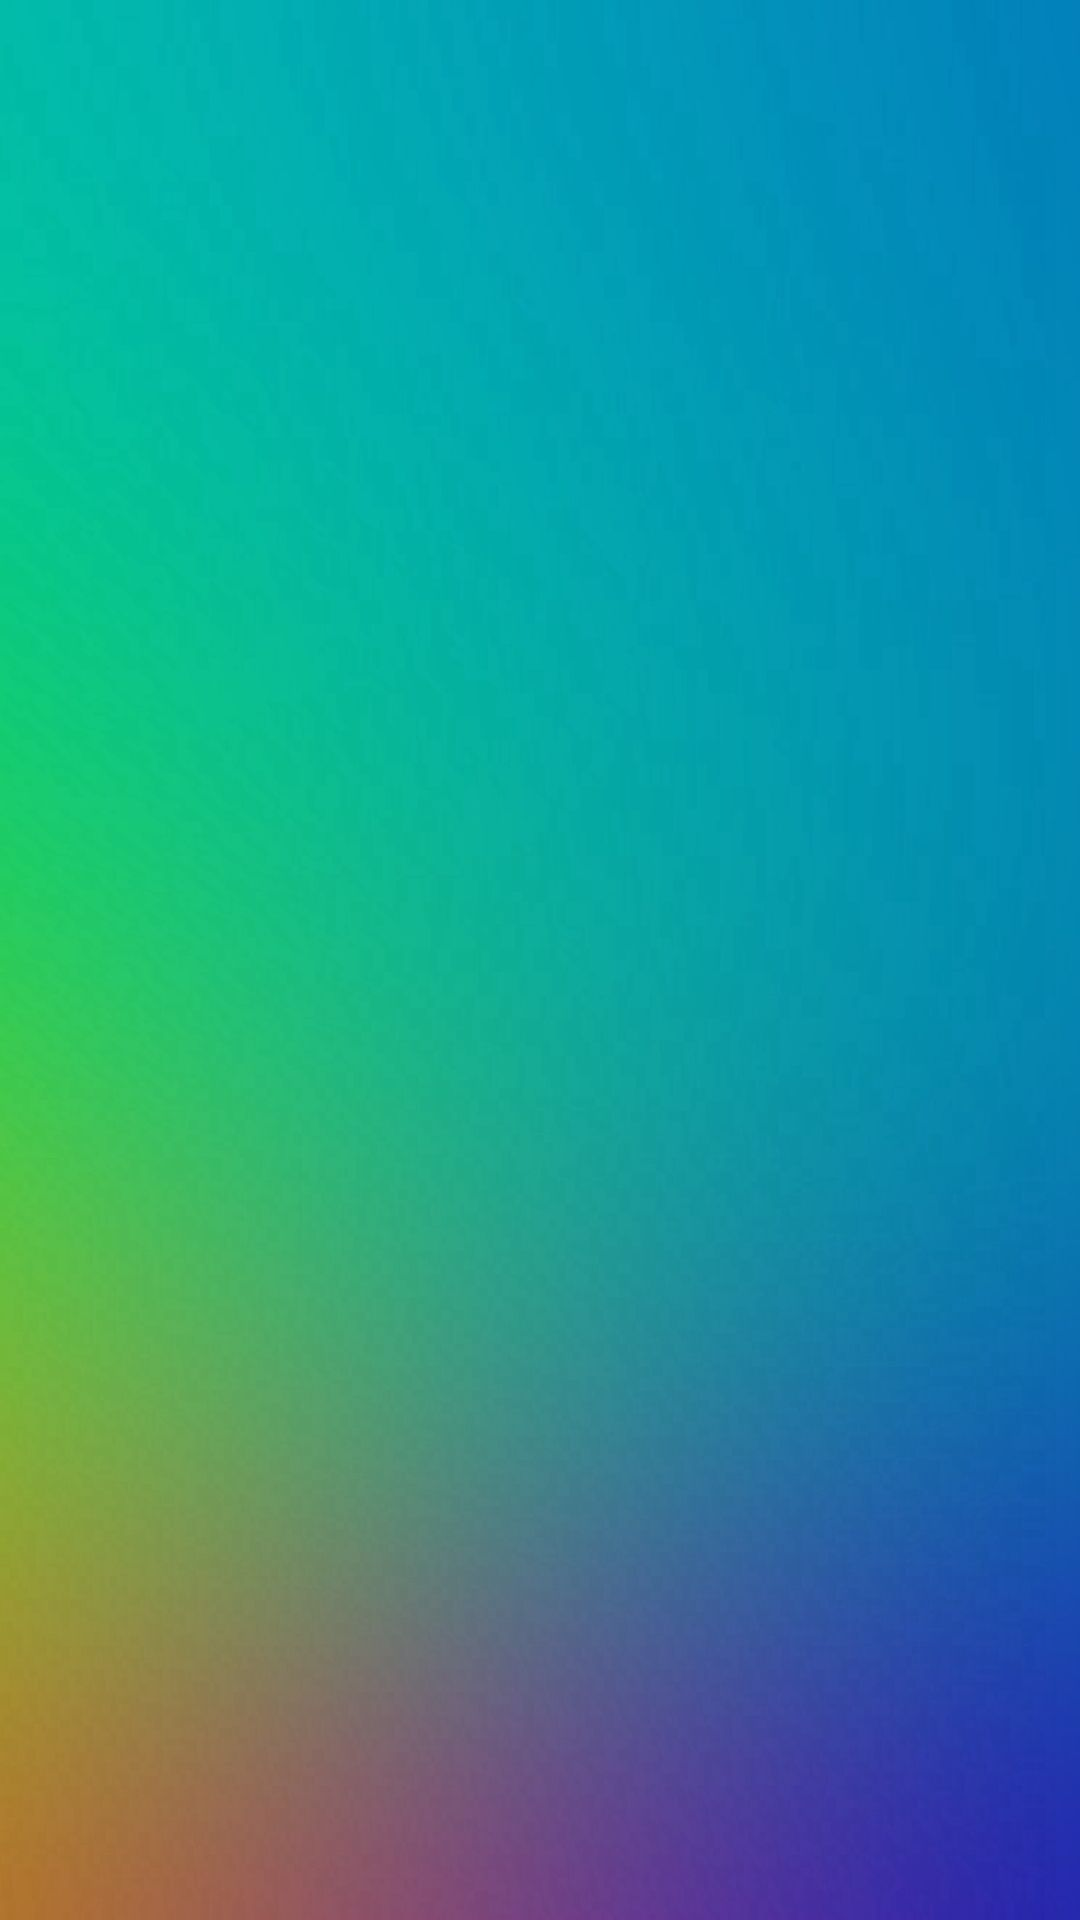 Color Rainbow Gradation Blur IPhone 6 Plus Wallpaper